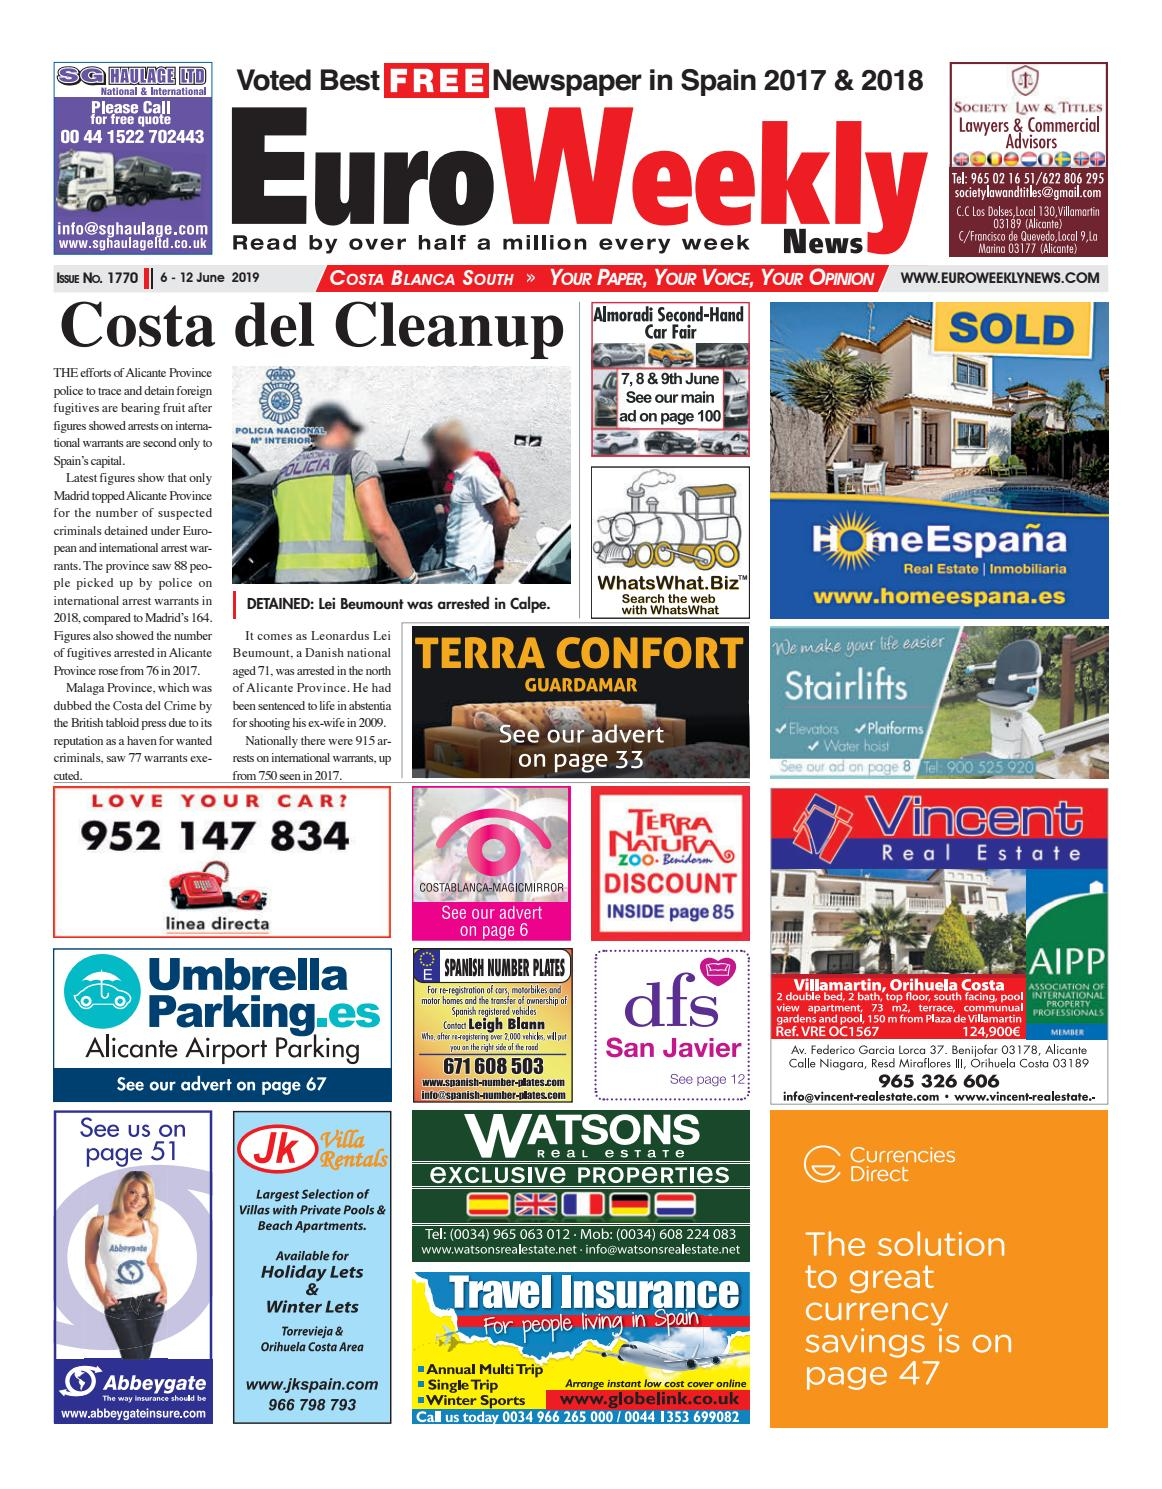 Animal Crossing Drawing Blanca Face Porn euro weekly news - costa blanca south 6 - 12 june 2019 issue